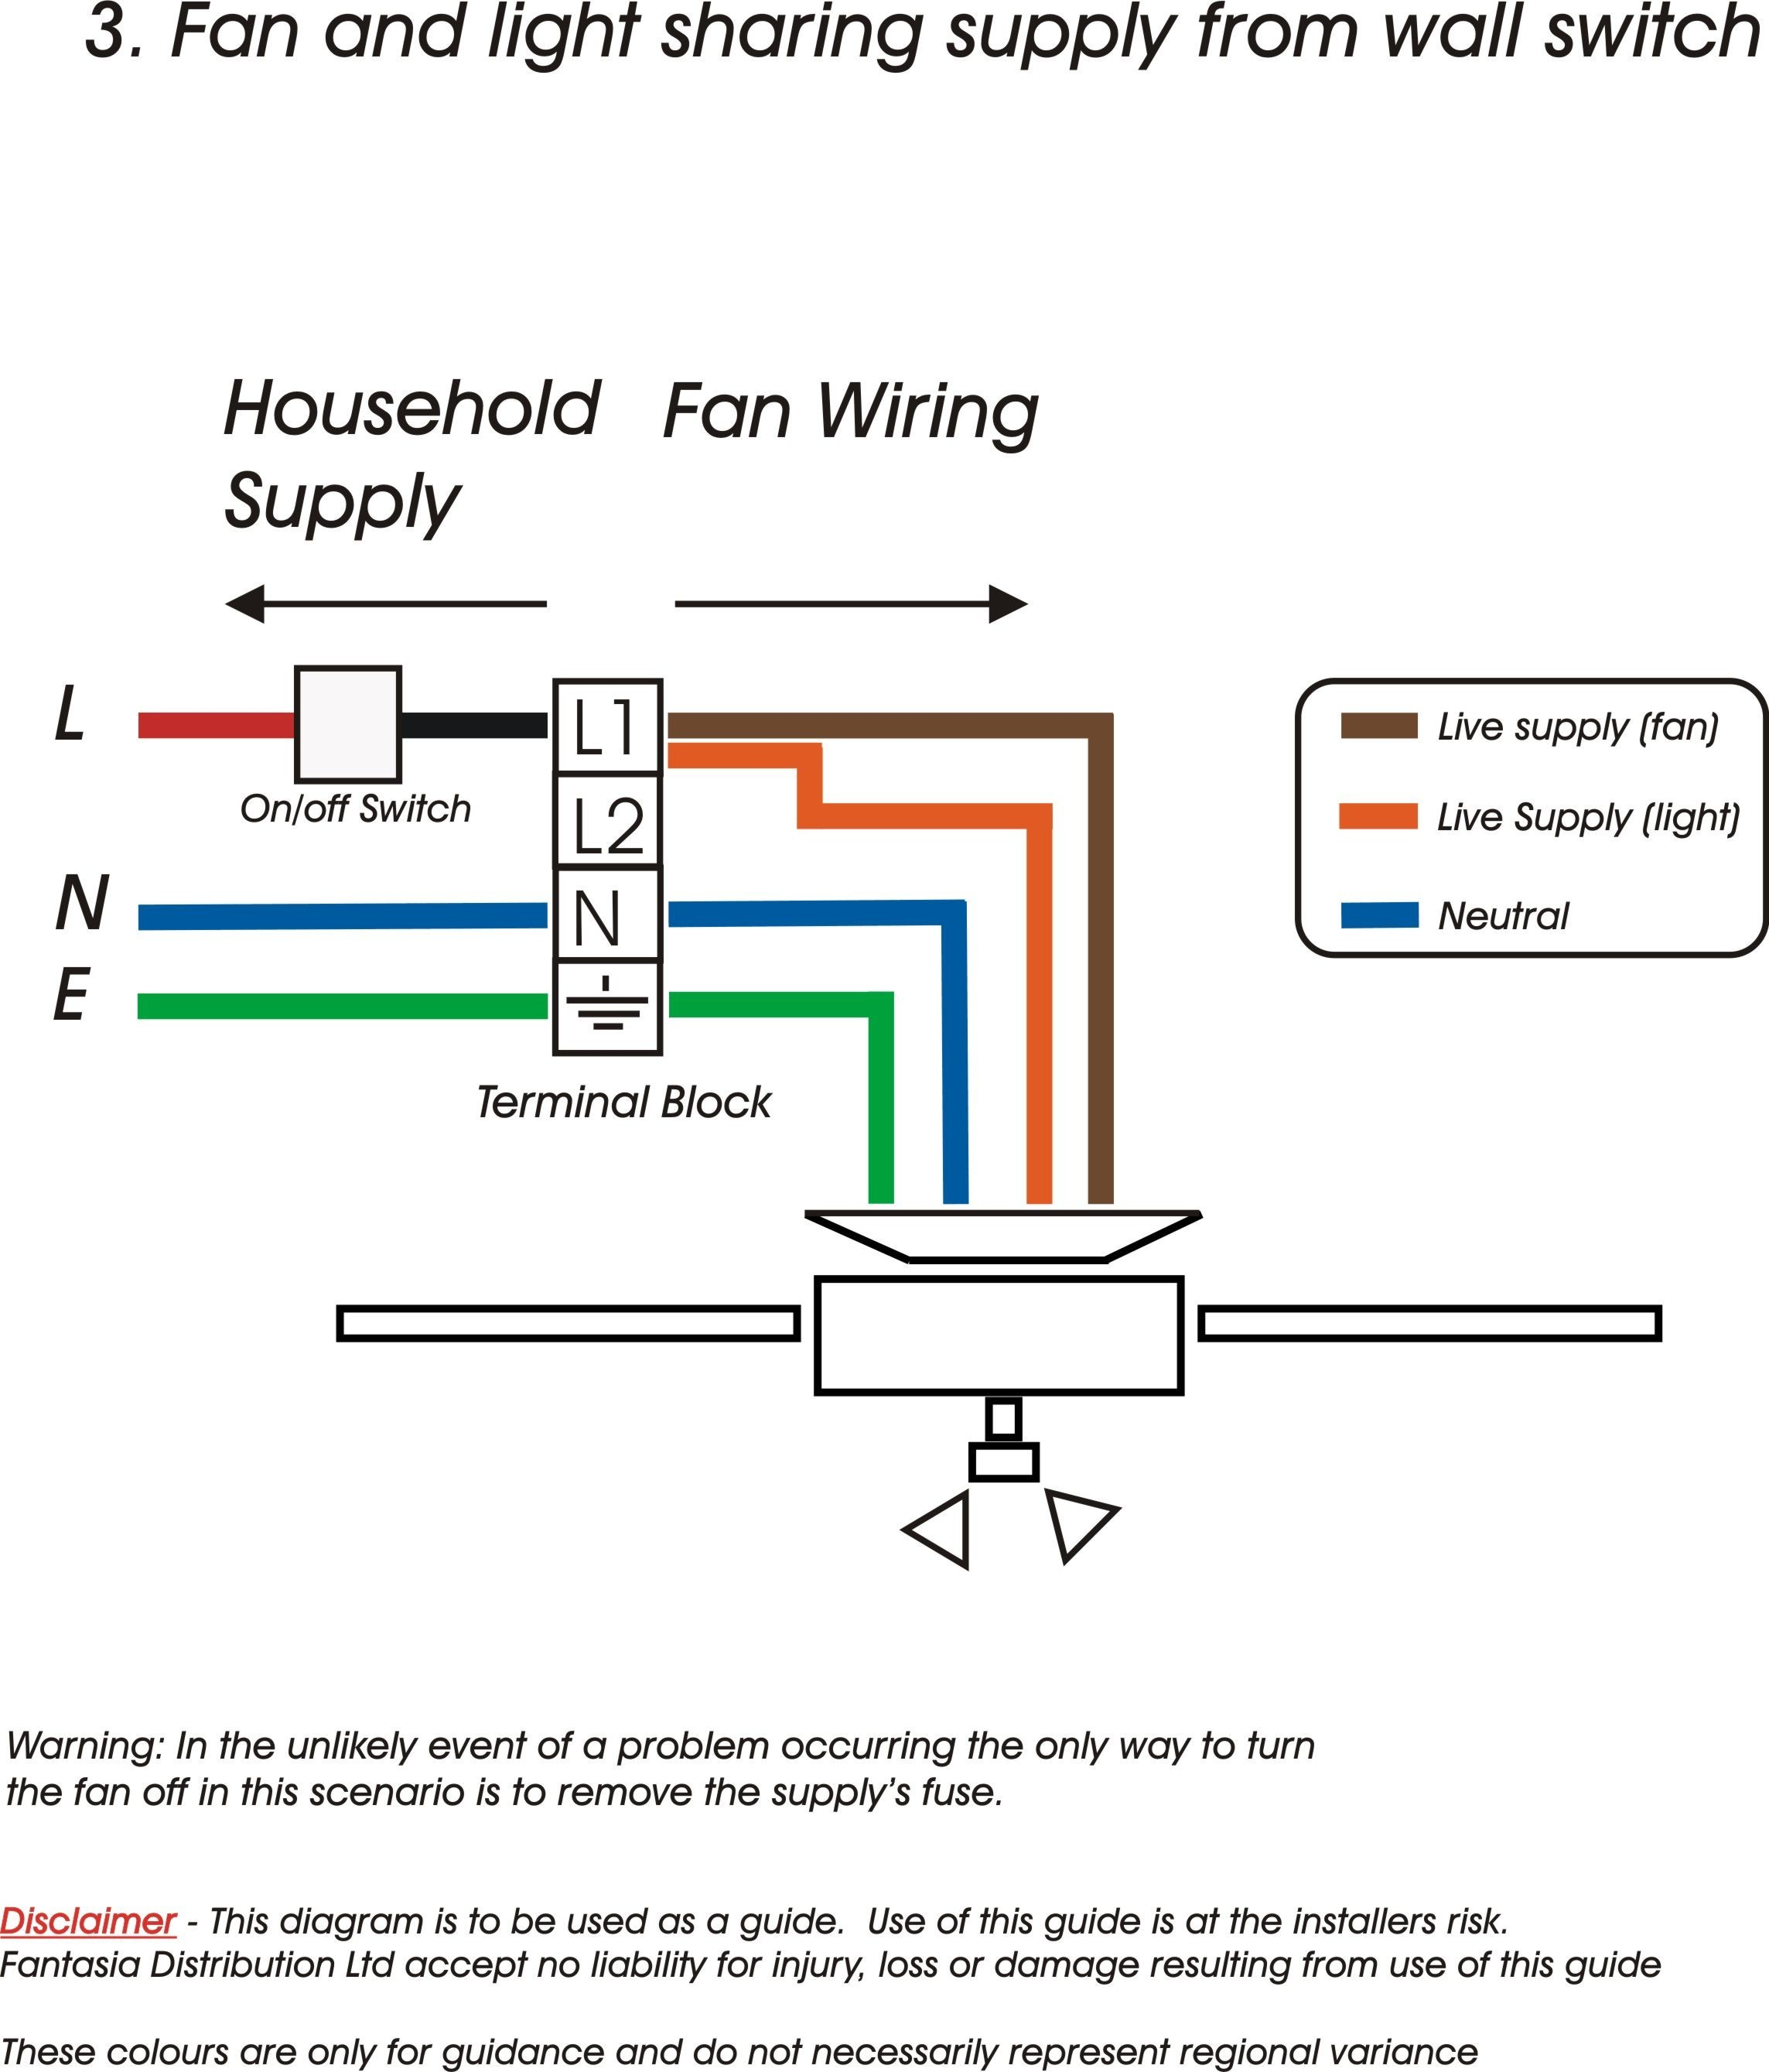 377 Peterbilt Cooling Fan Wiring Diagram Schematic Diagrams 1996 379 Product U2022 386